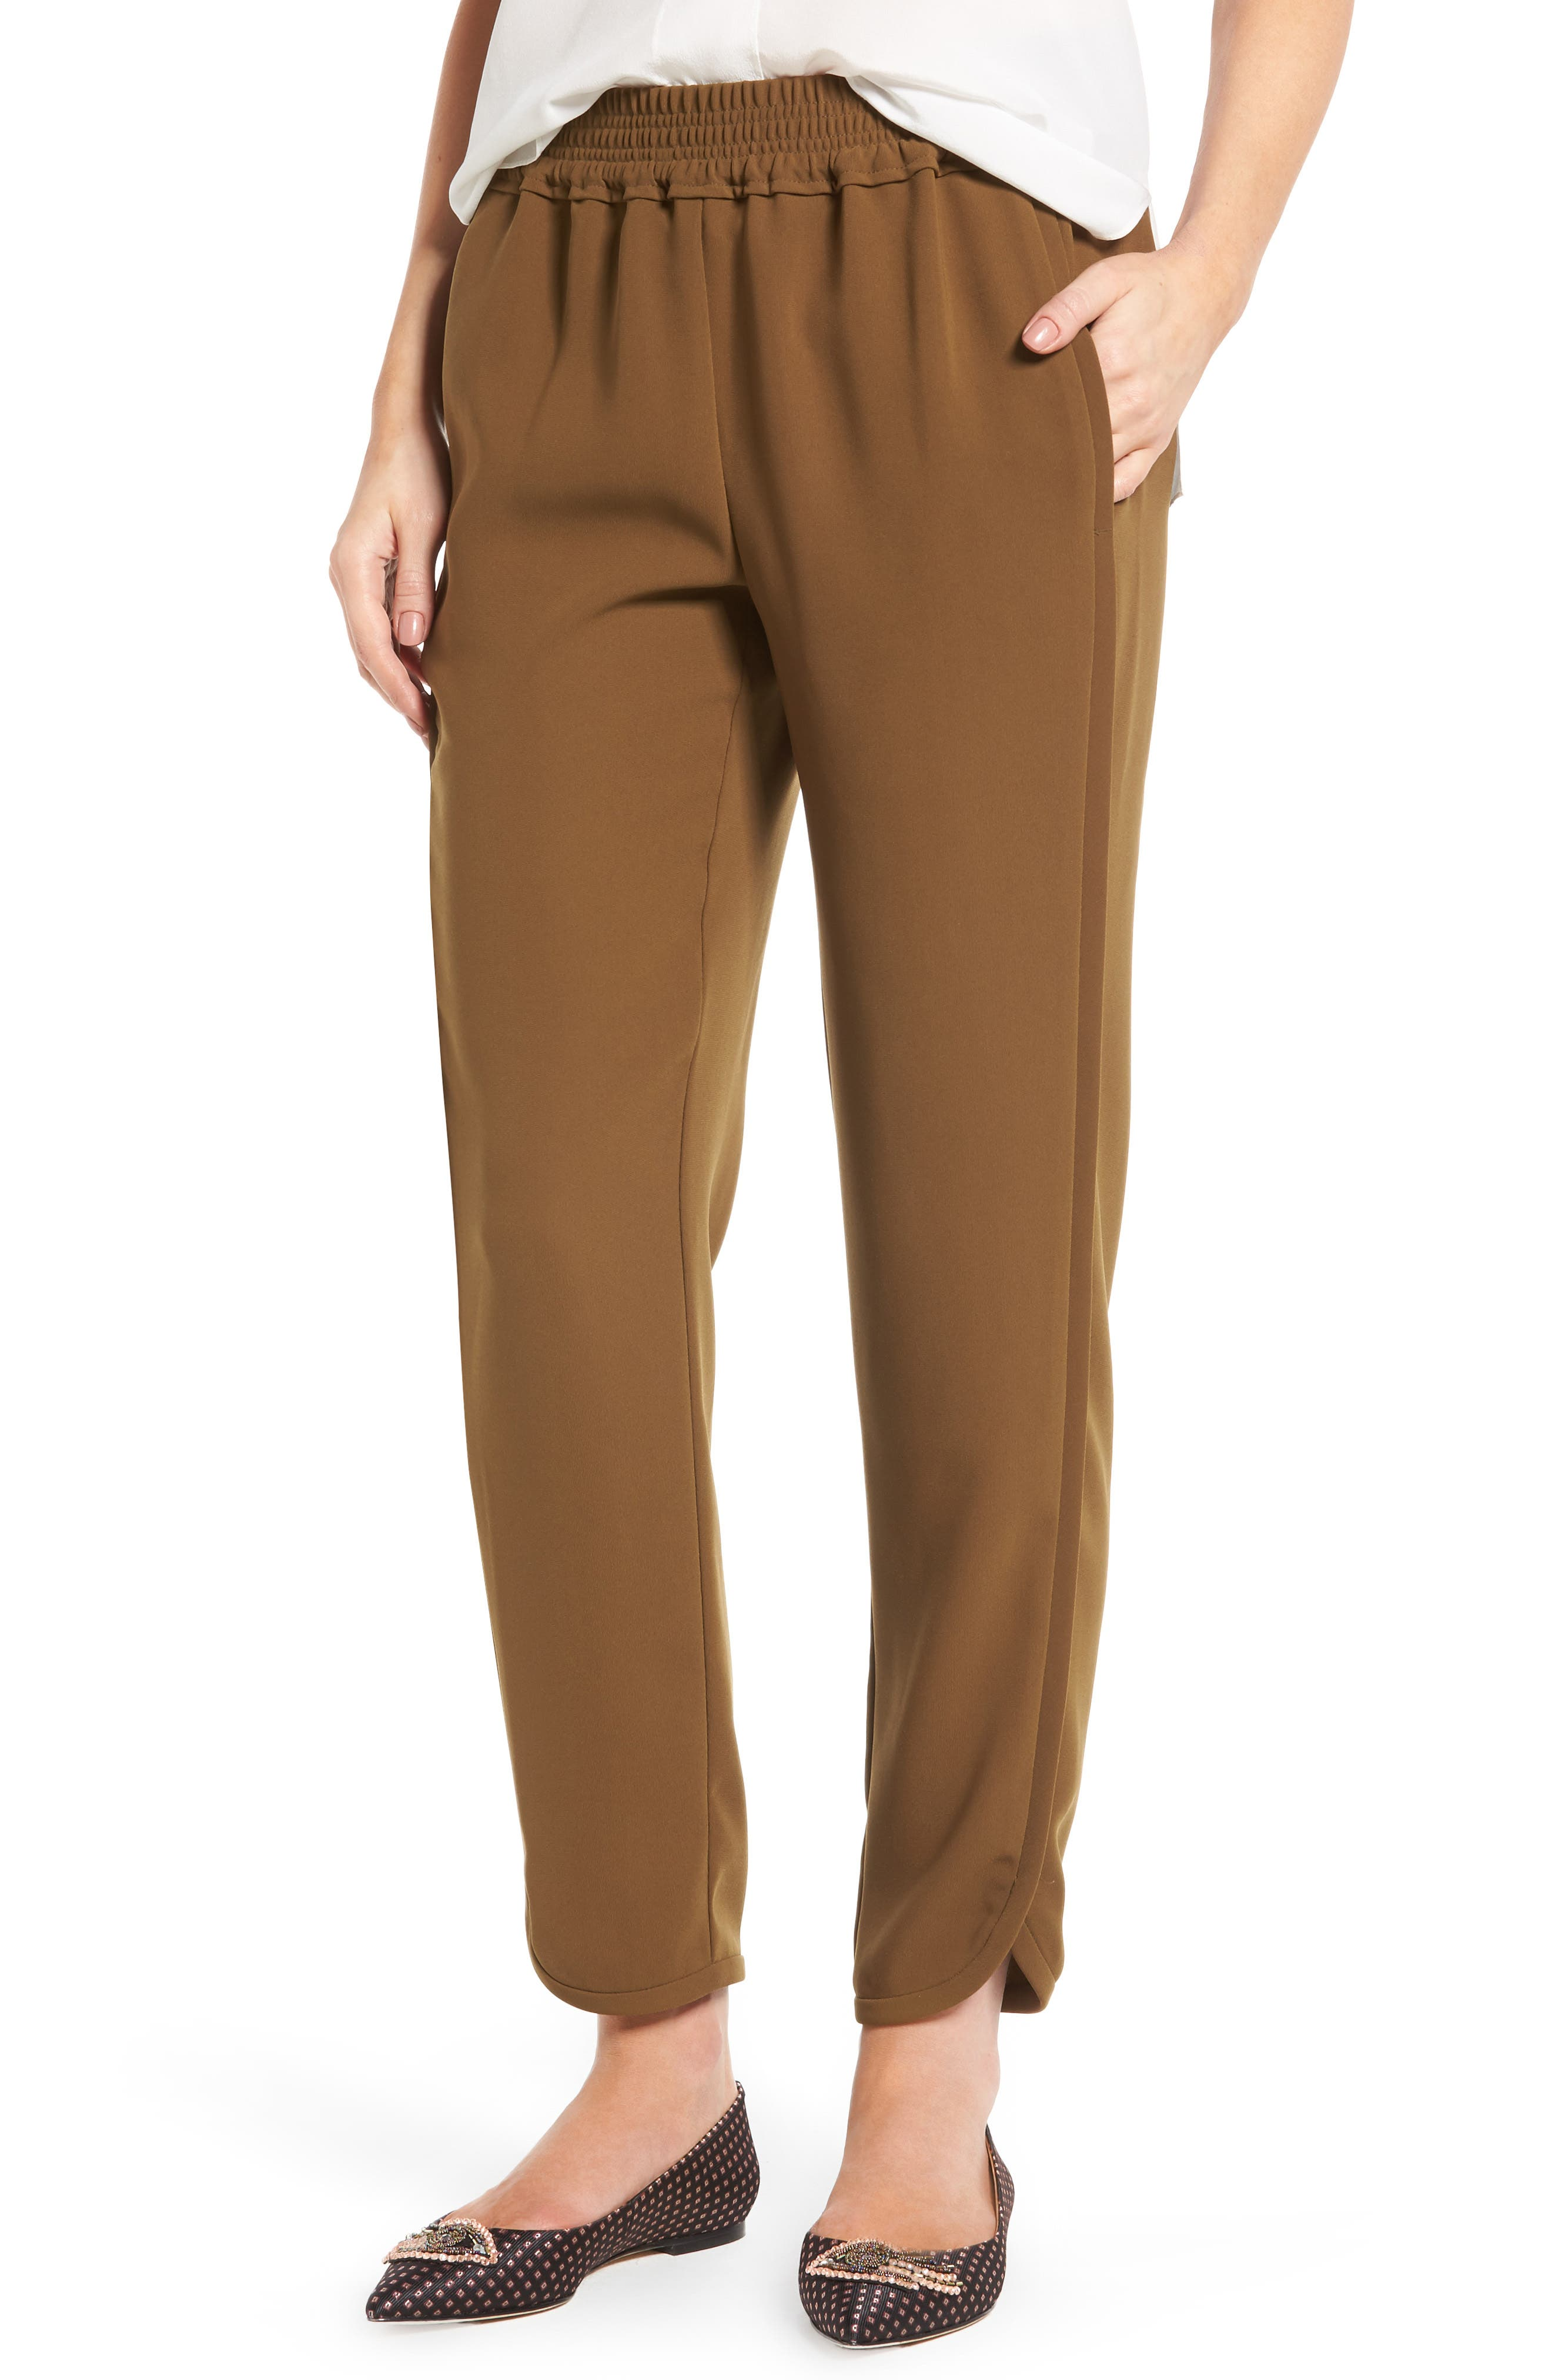 J.Crew Reese Pants (Regular & Petite)